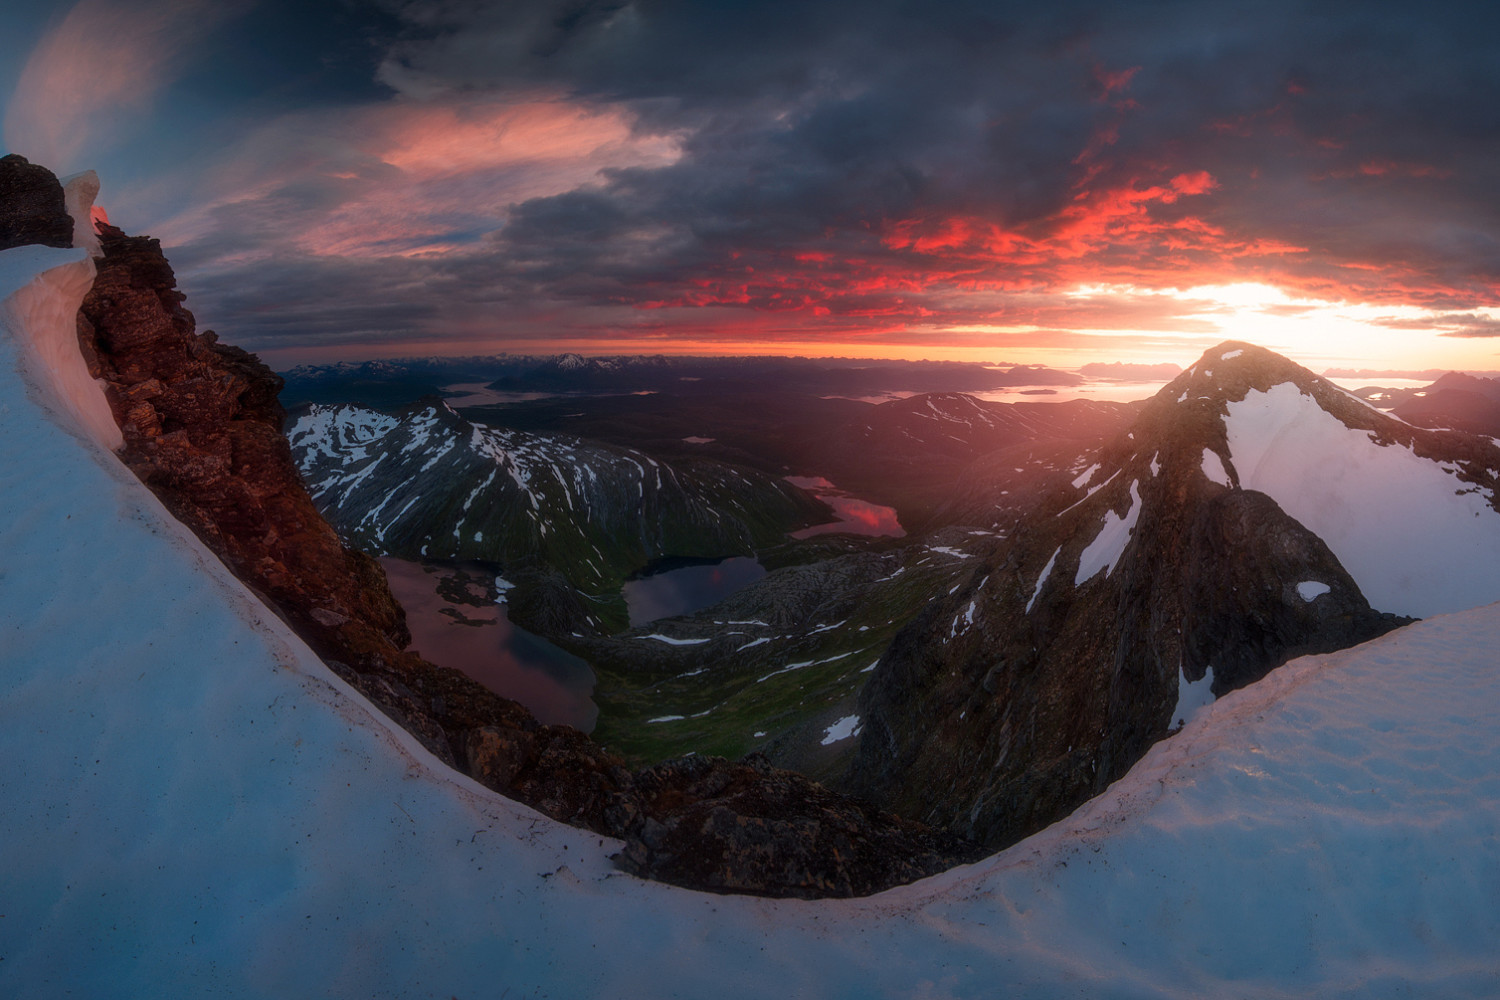 Exploring a Remote Mountain Paradise with Max Rive